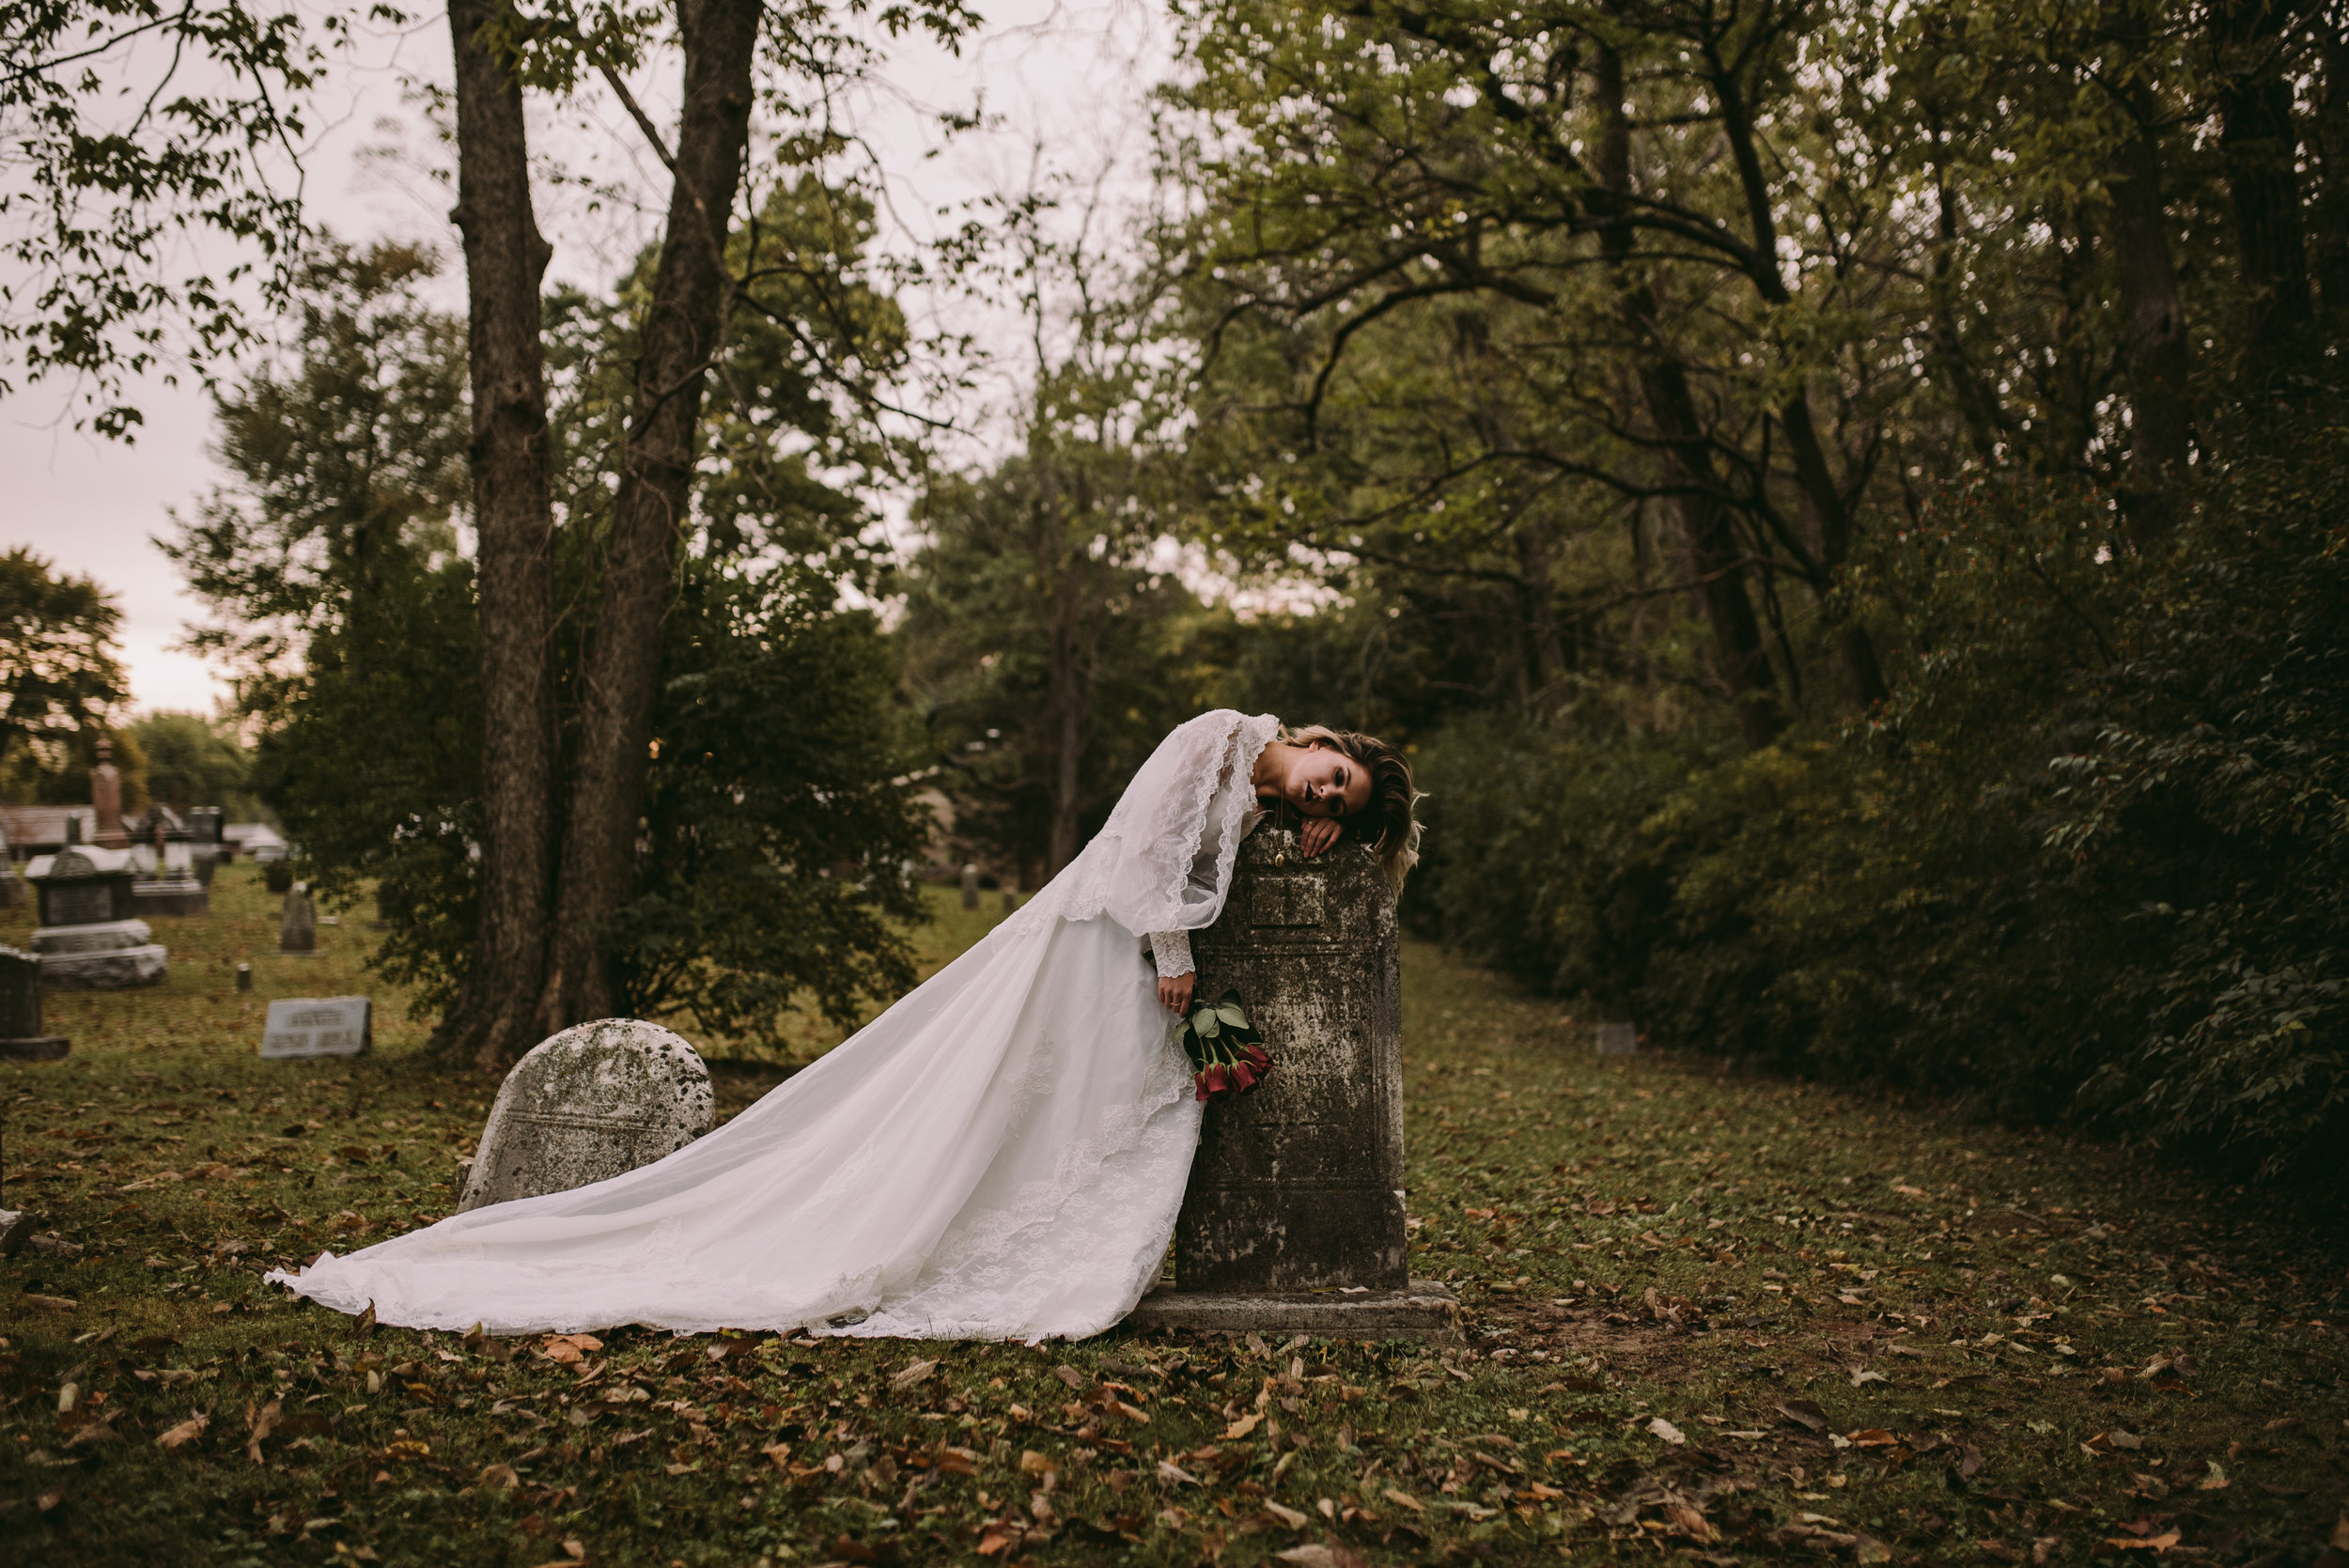 HalloweenPhotoshoot_Pride_October2018_SamanthaRosePhotography_PhoenixSeniorPhotography_FINAL_049.JPG